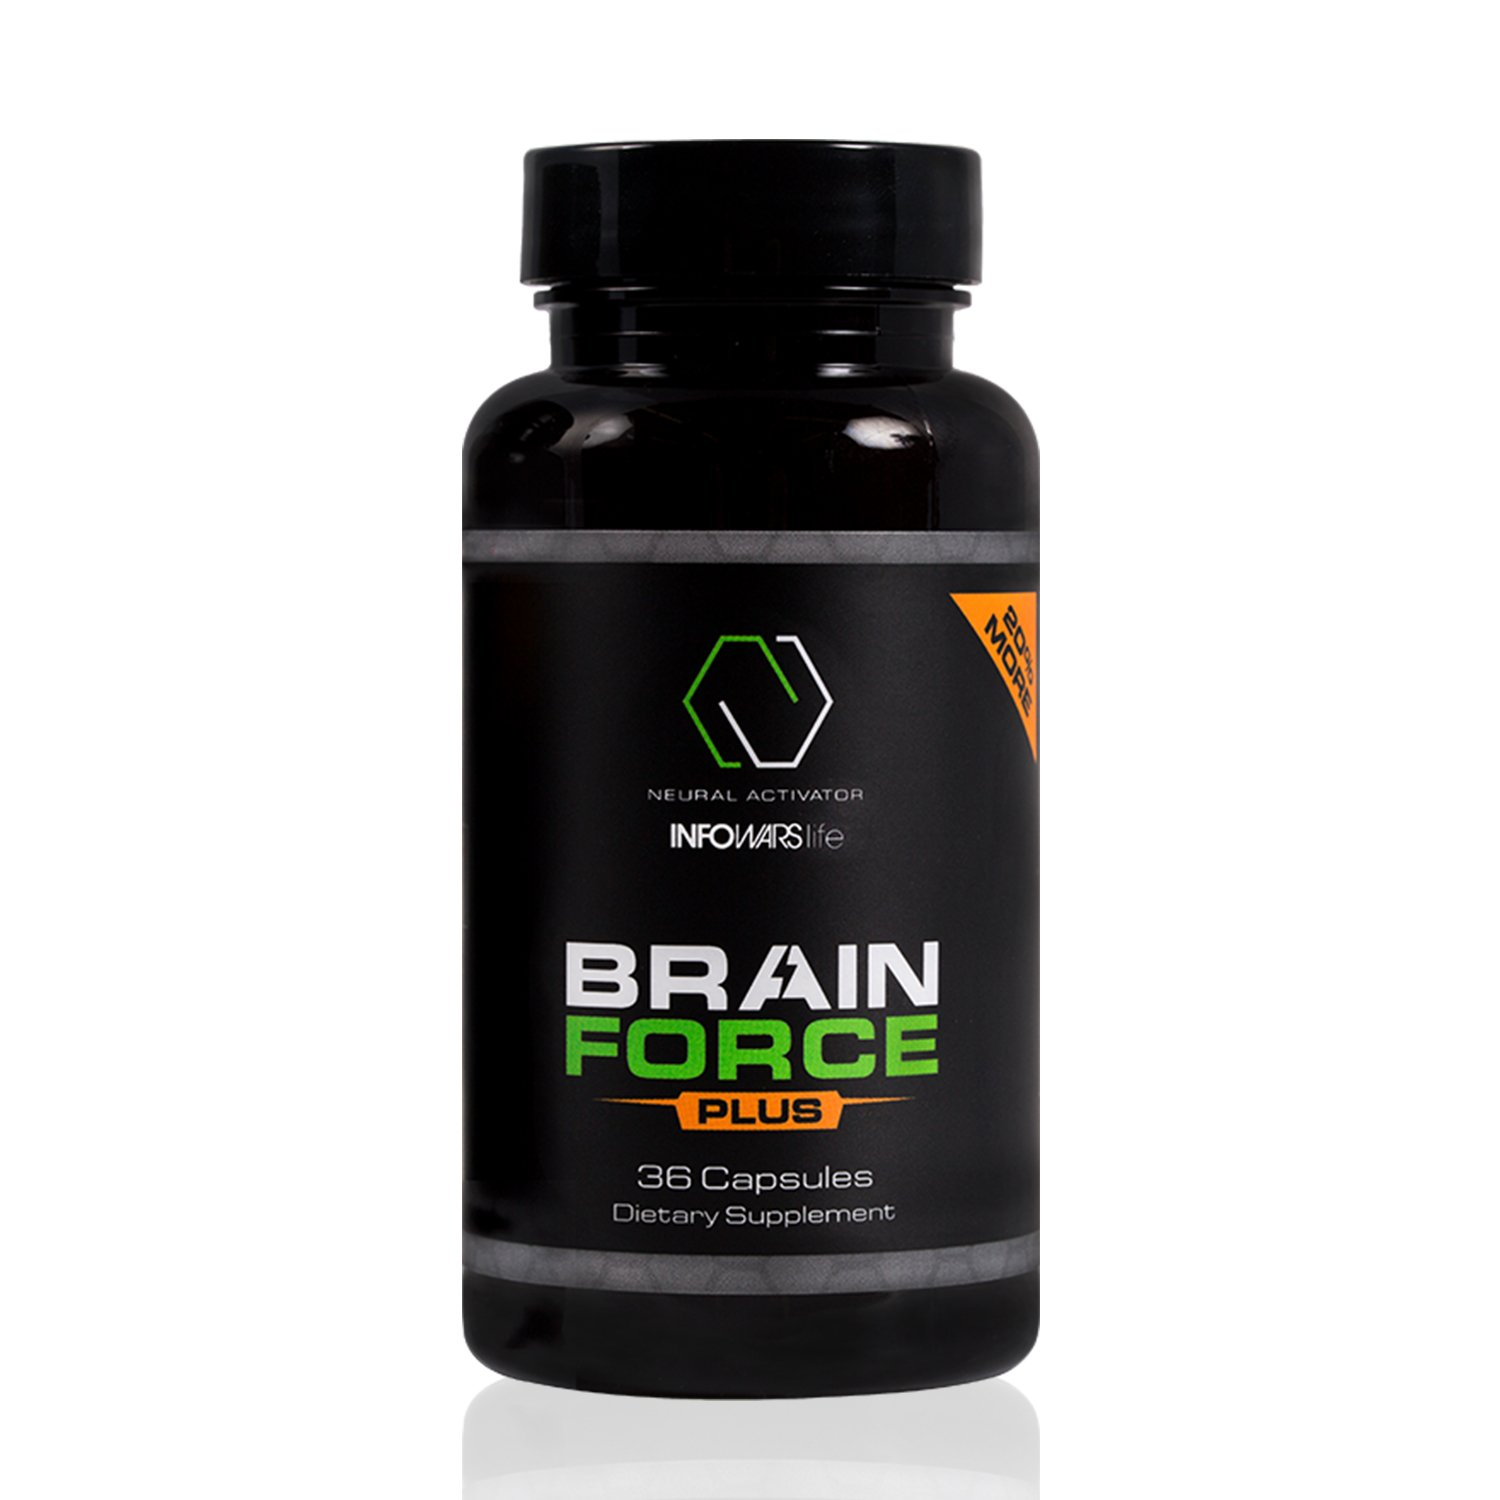 Brain Force Plus Nootropic Supplement (36 Capsules) – Extra Strength Formula to Boost Memory, Focus, Energy & Clarity